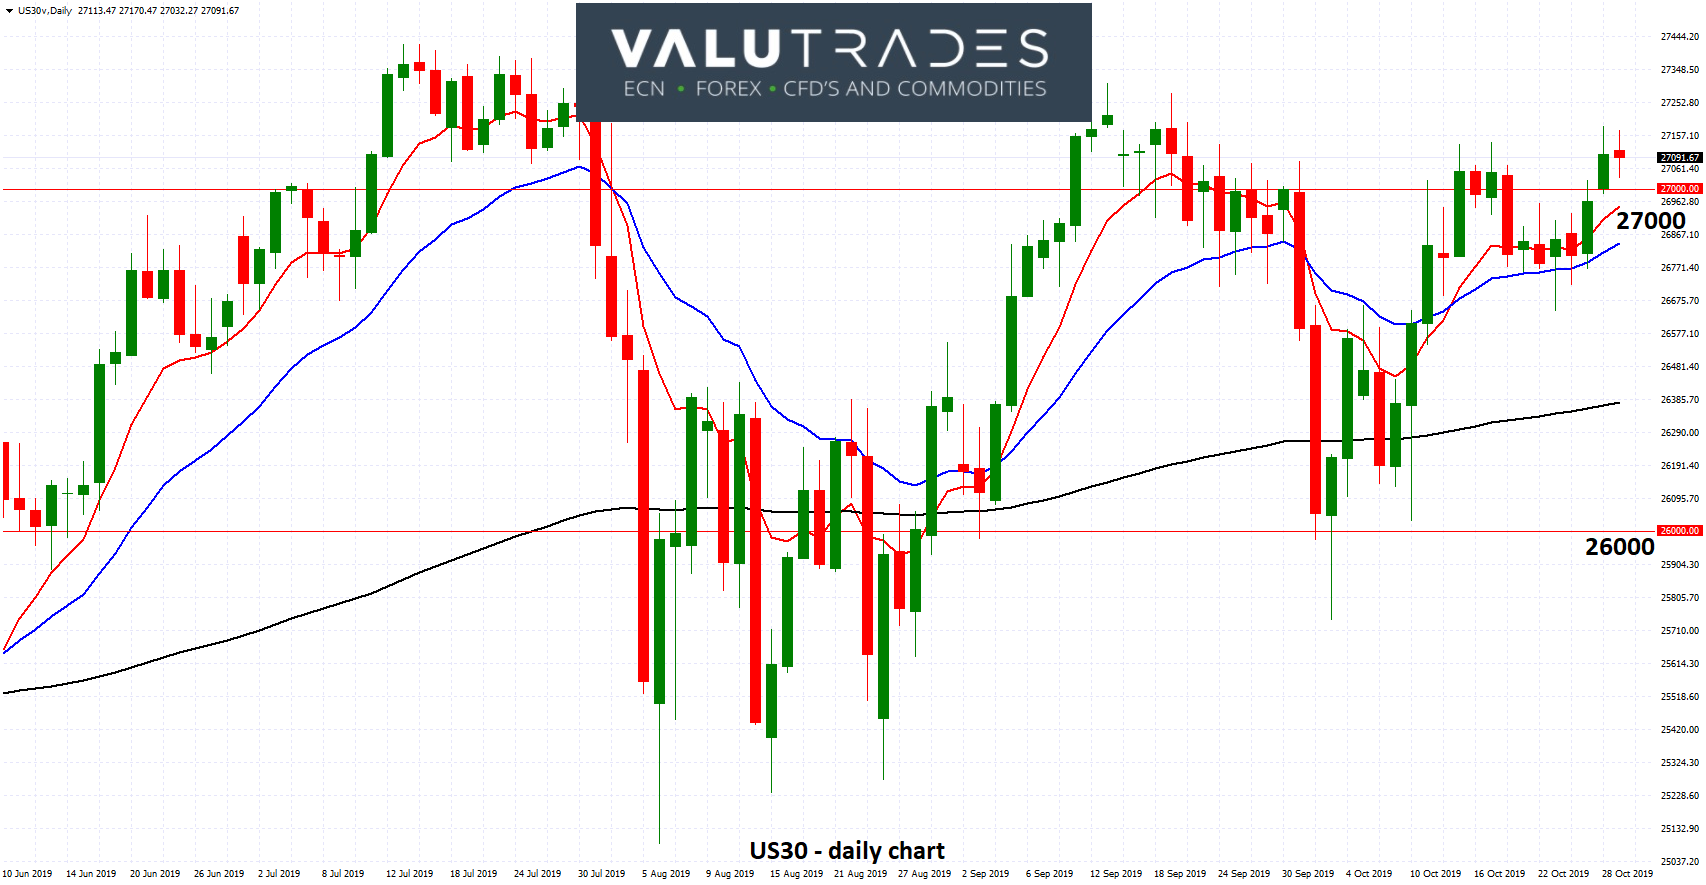 US30 - Trades Around Key 27000 Again as Markets Look to Fed